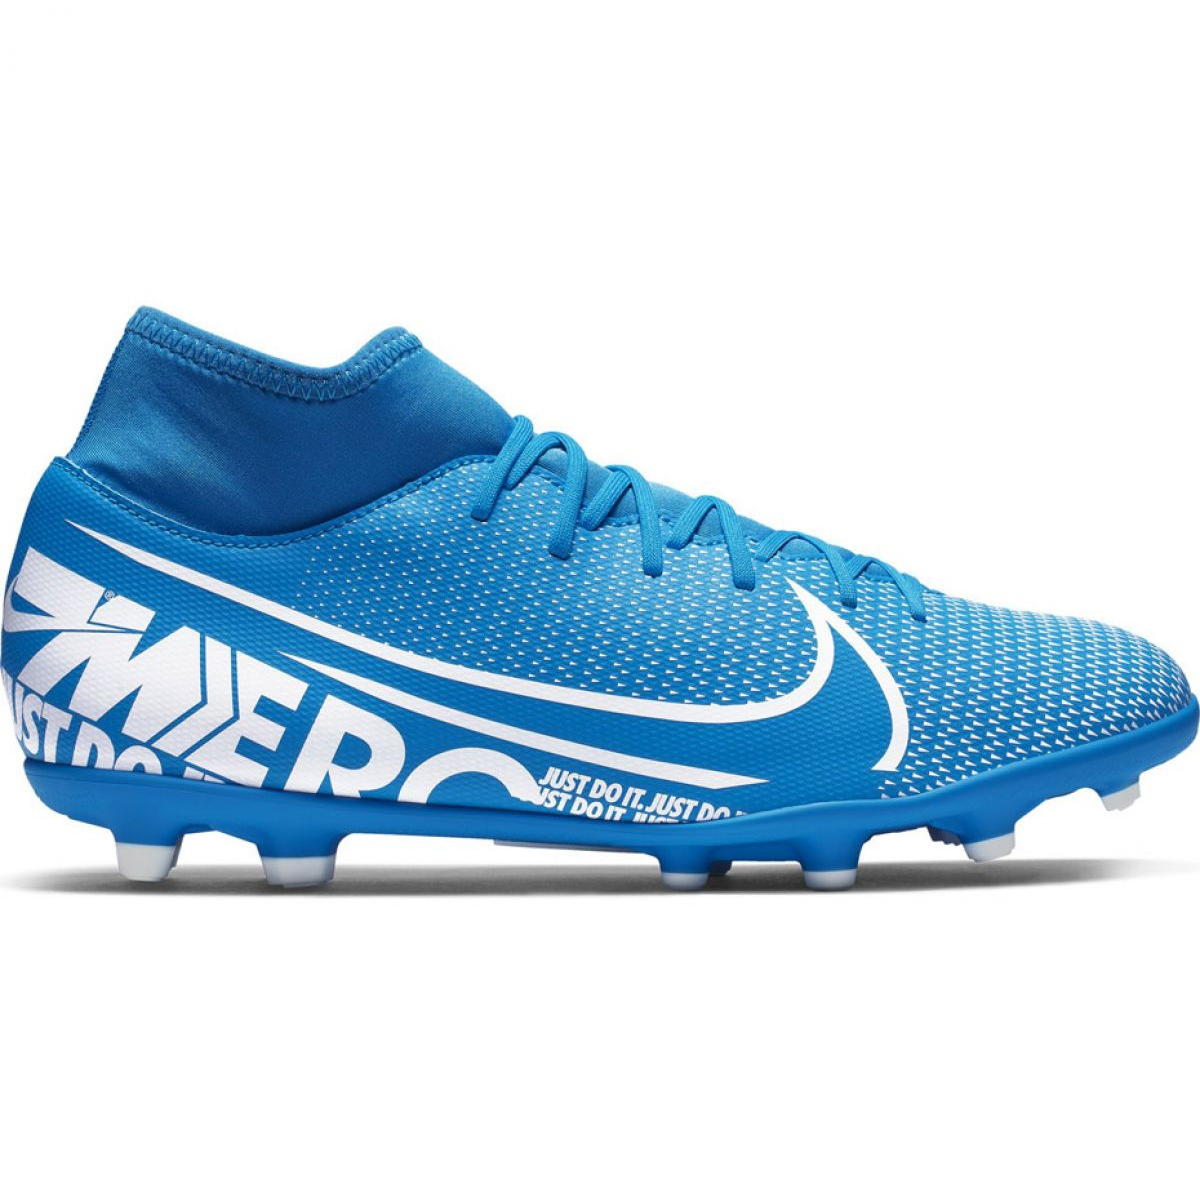 Fussballschuhe Nike Mercurial Superfly 7 Club Fg Mg M At7949 414 Blau Blau